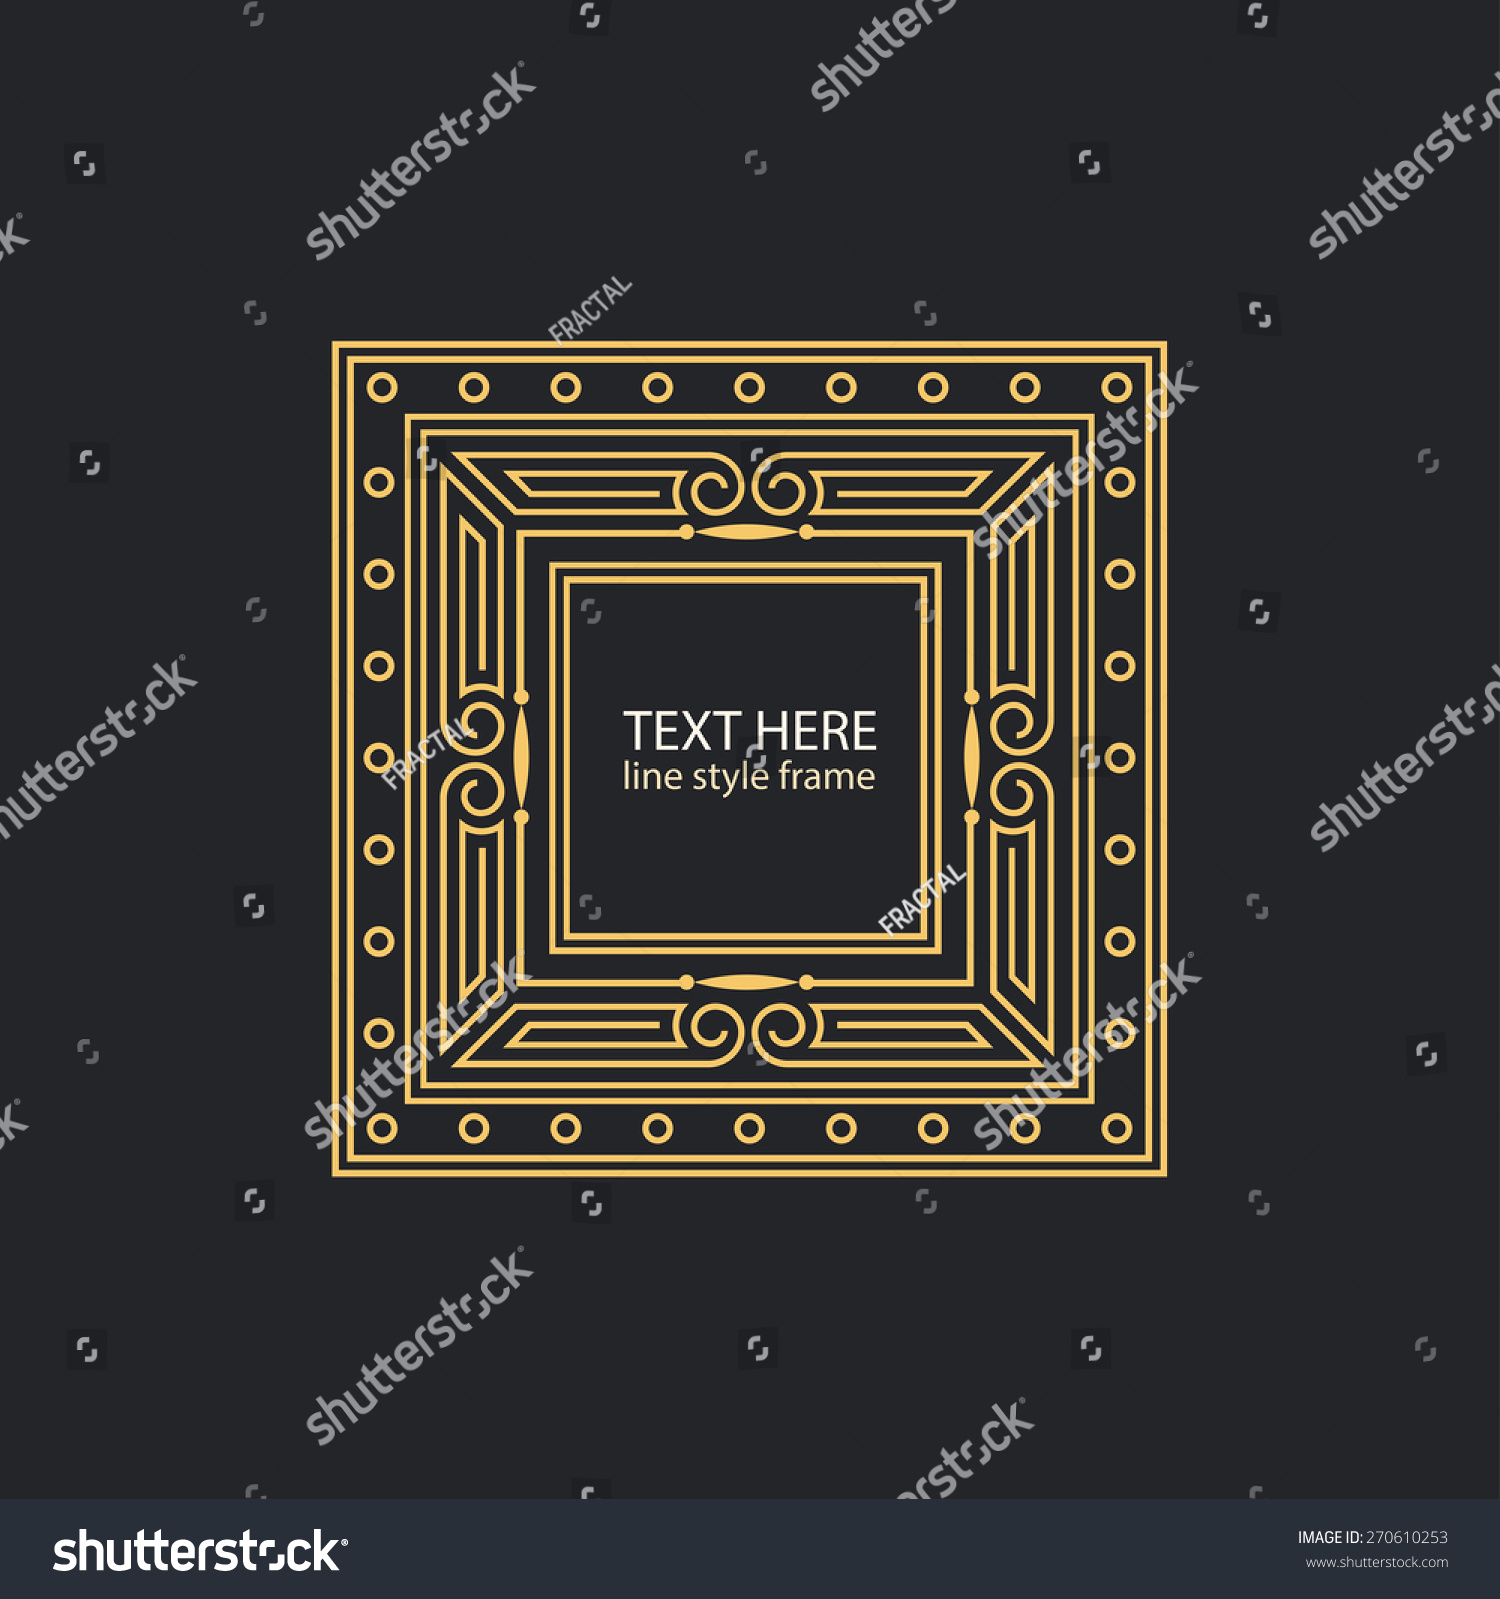 vector text decoration linear style frame stock vector 270610253 shutterstock. Black Bedroom Furniture Sets. Home Design Ideas